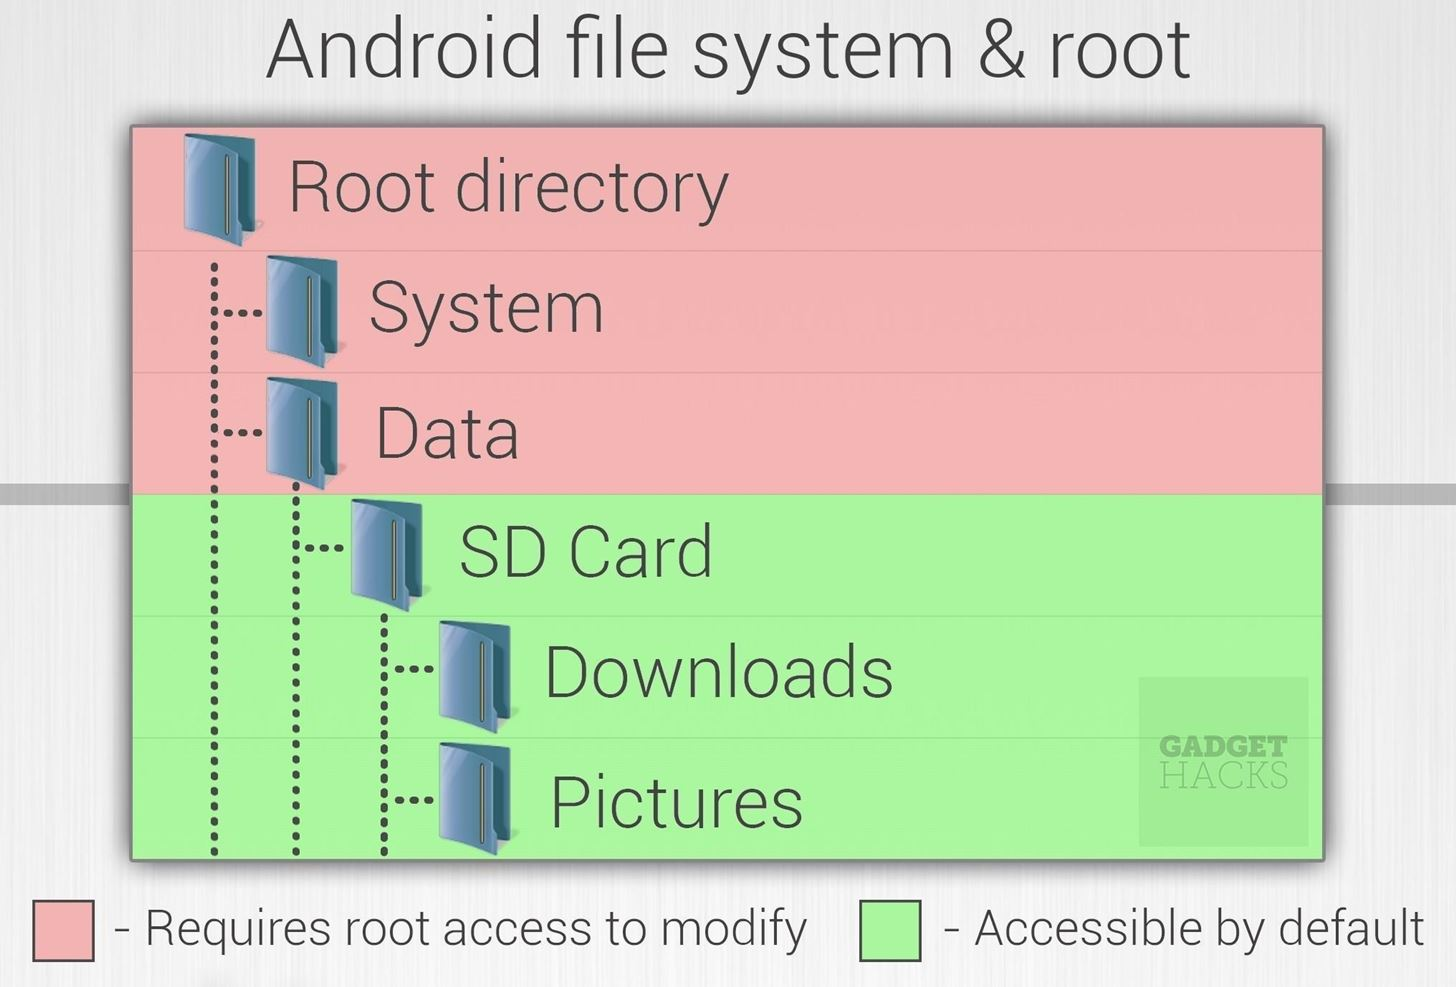 SafetyNet Explained: Why SafetyNet Shows That Google Actually Cares About Android Root